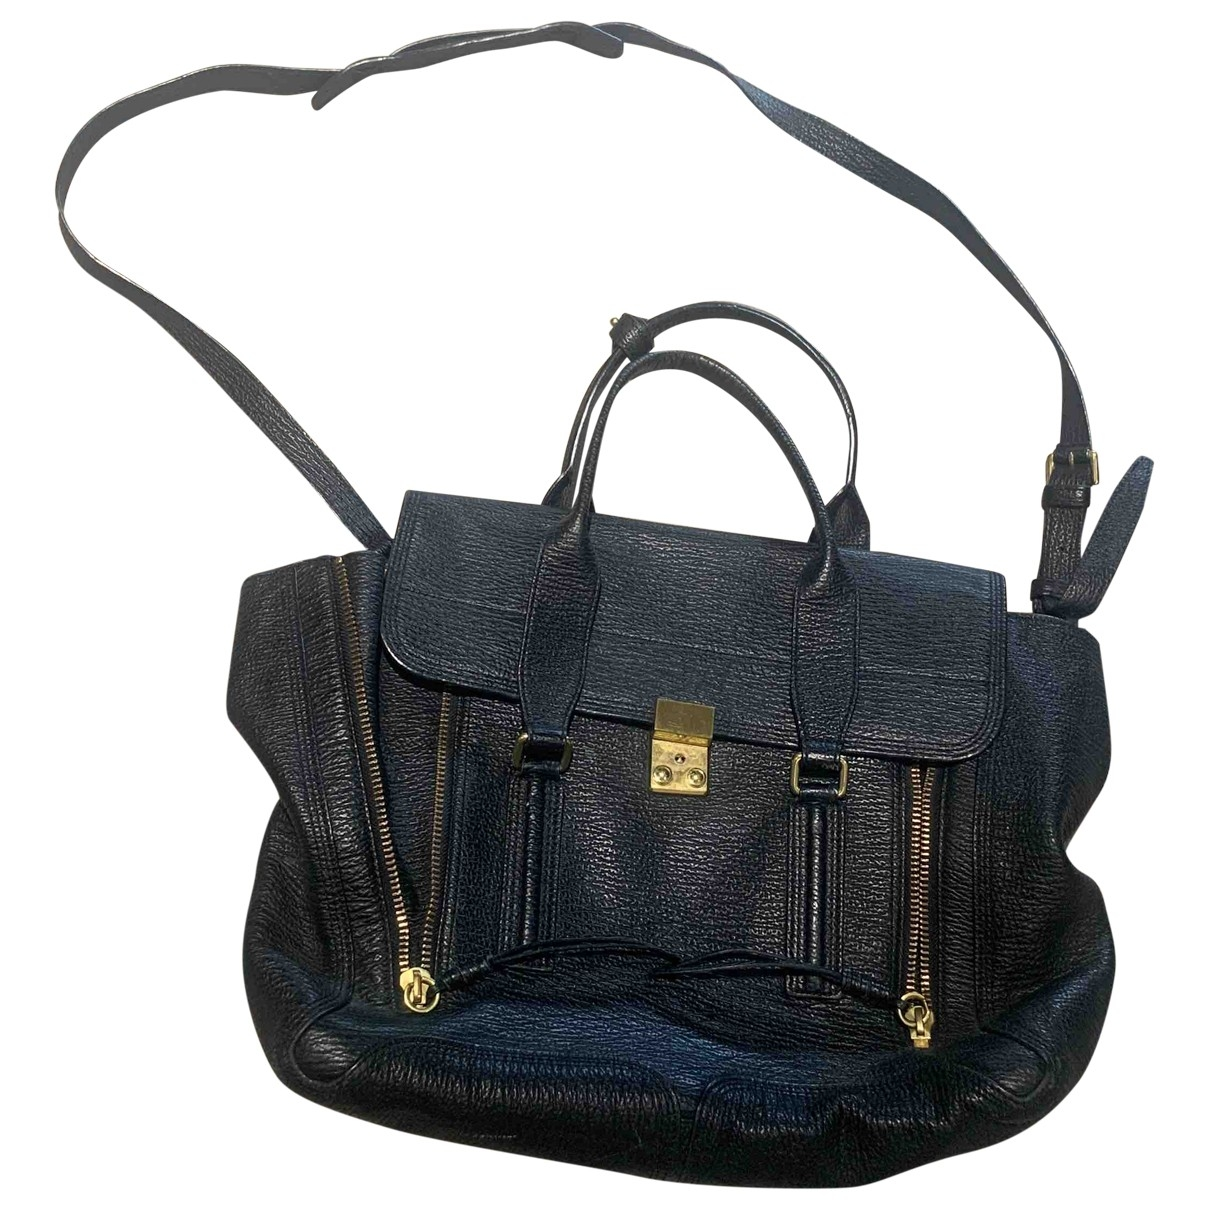 3.1 Phillip Lim Pashli Black Leather handbag for Women \N